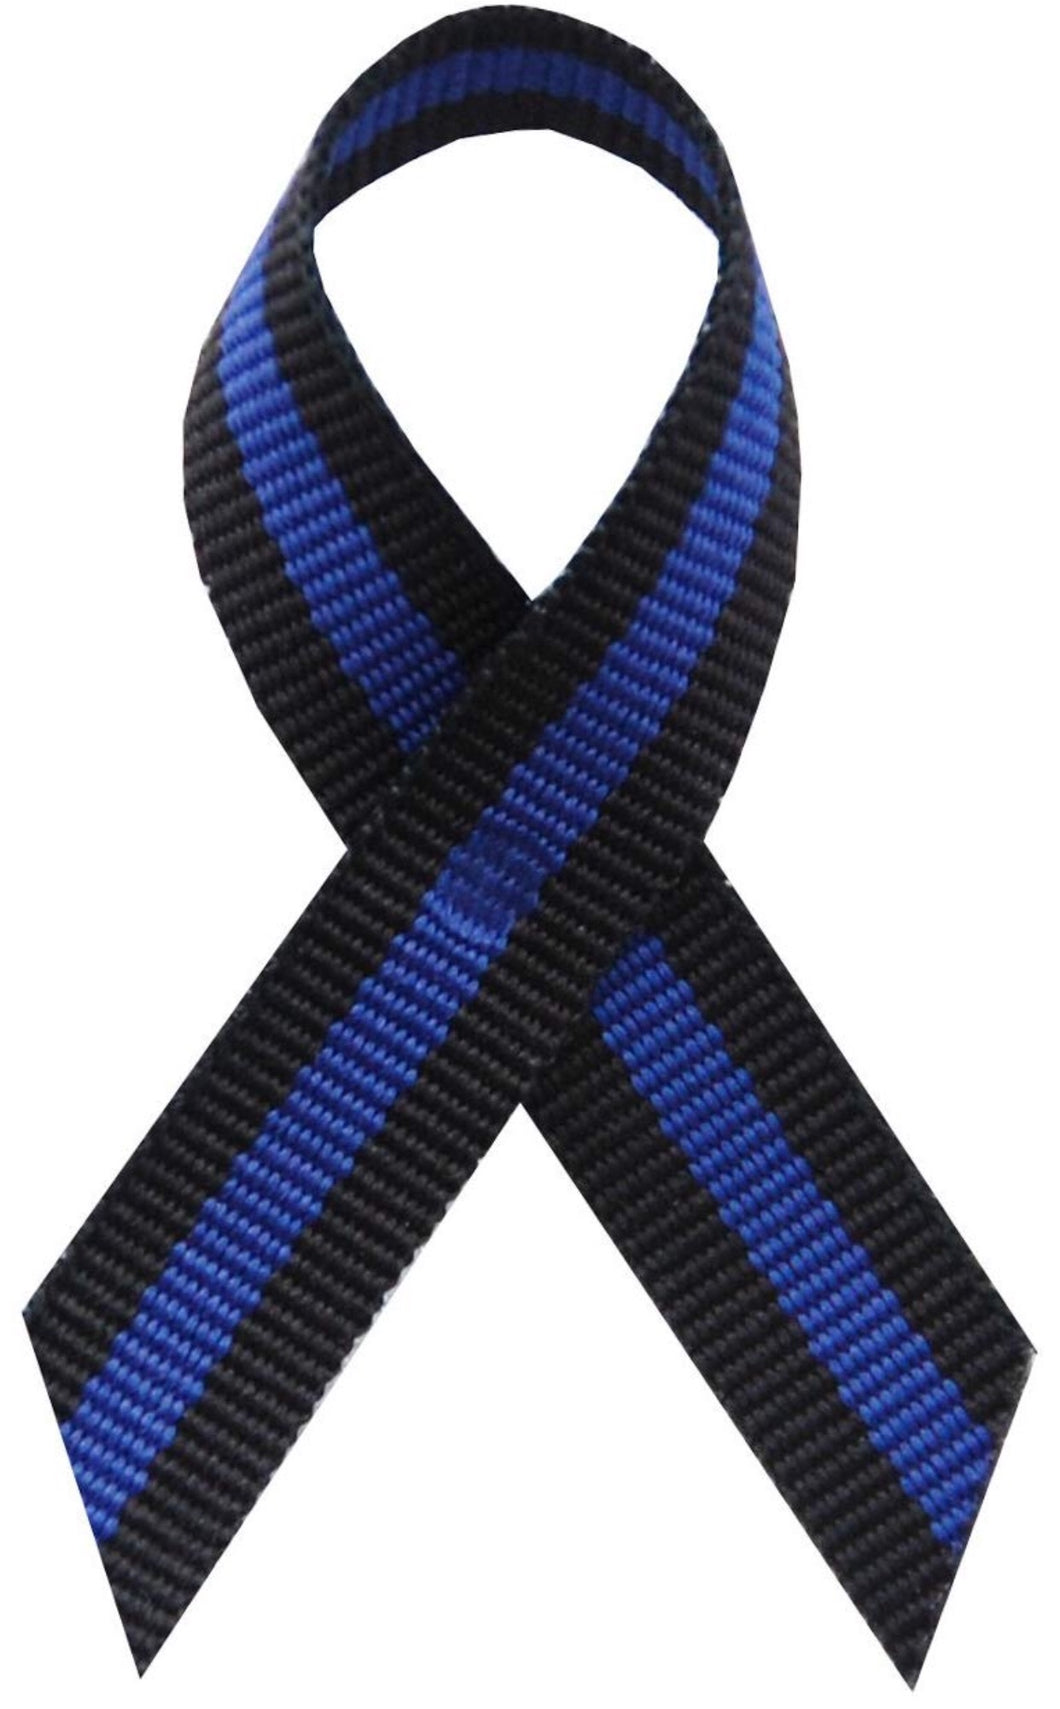 Thin Blue Line Fabric Awareness Ribbons -Lapel Ribbons w/Safety Pins